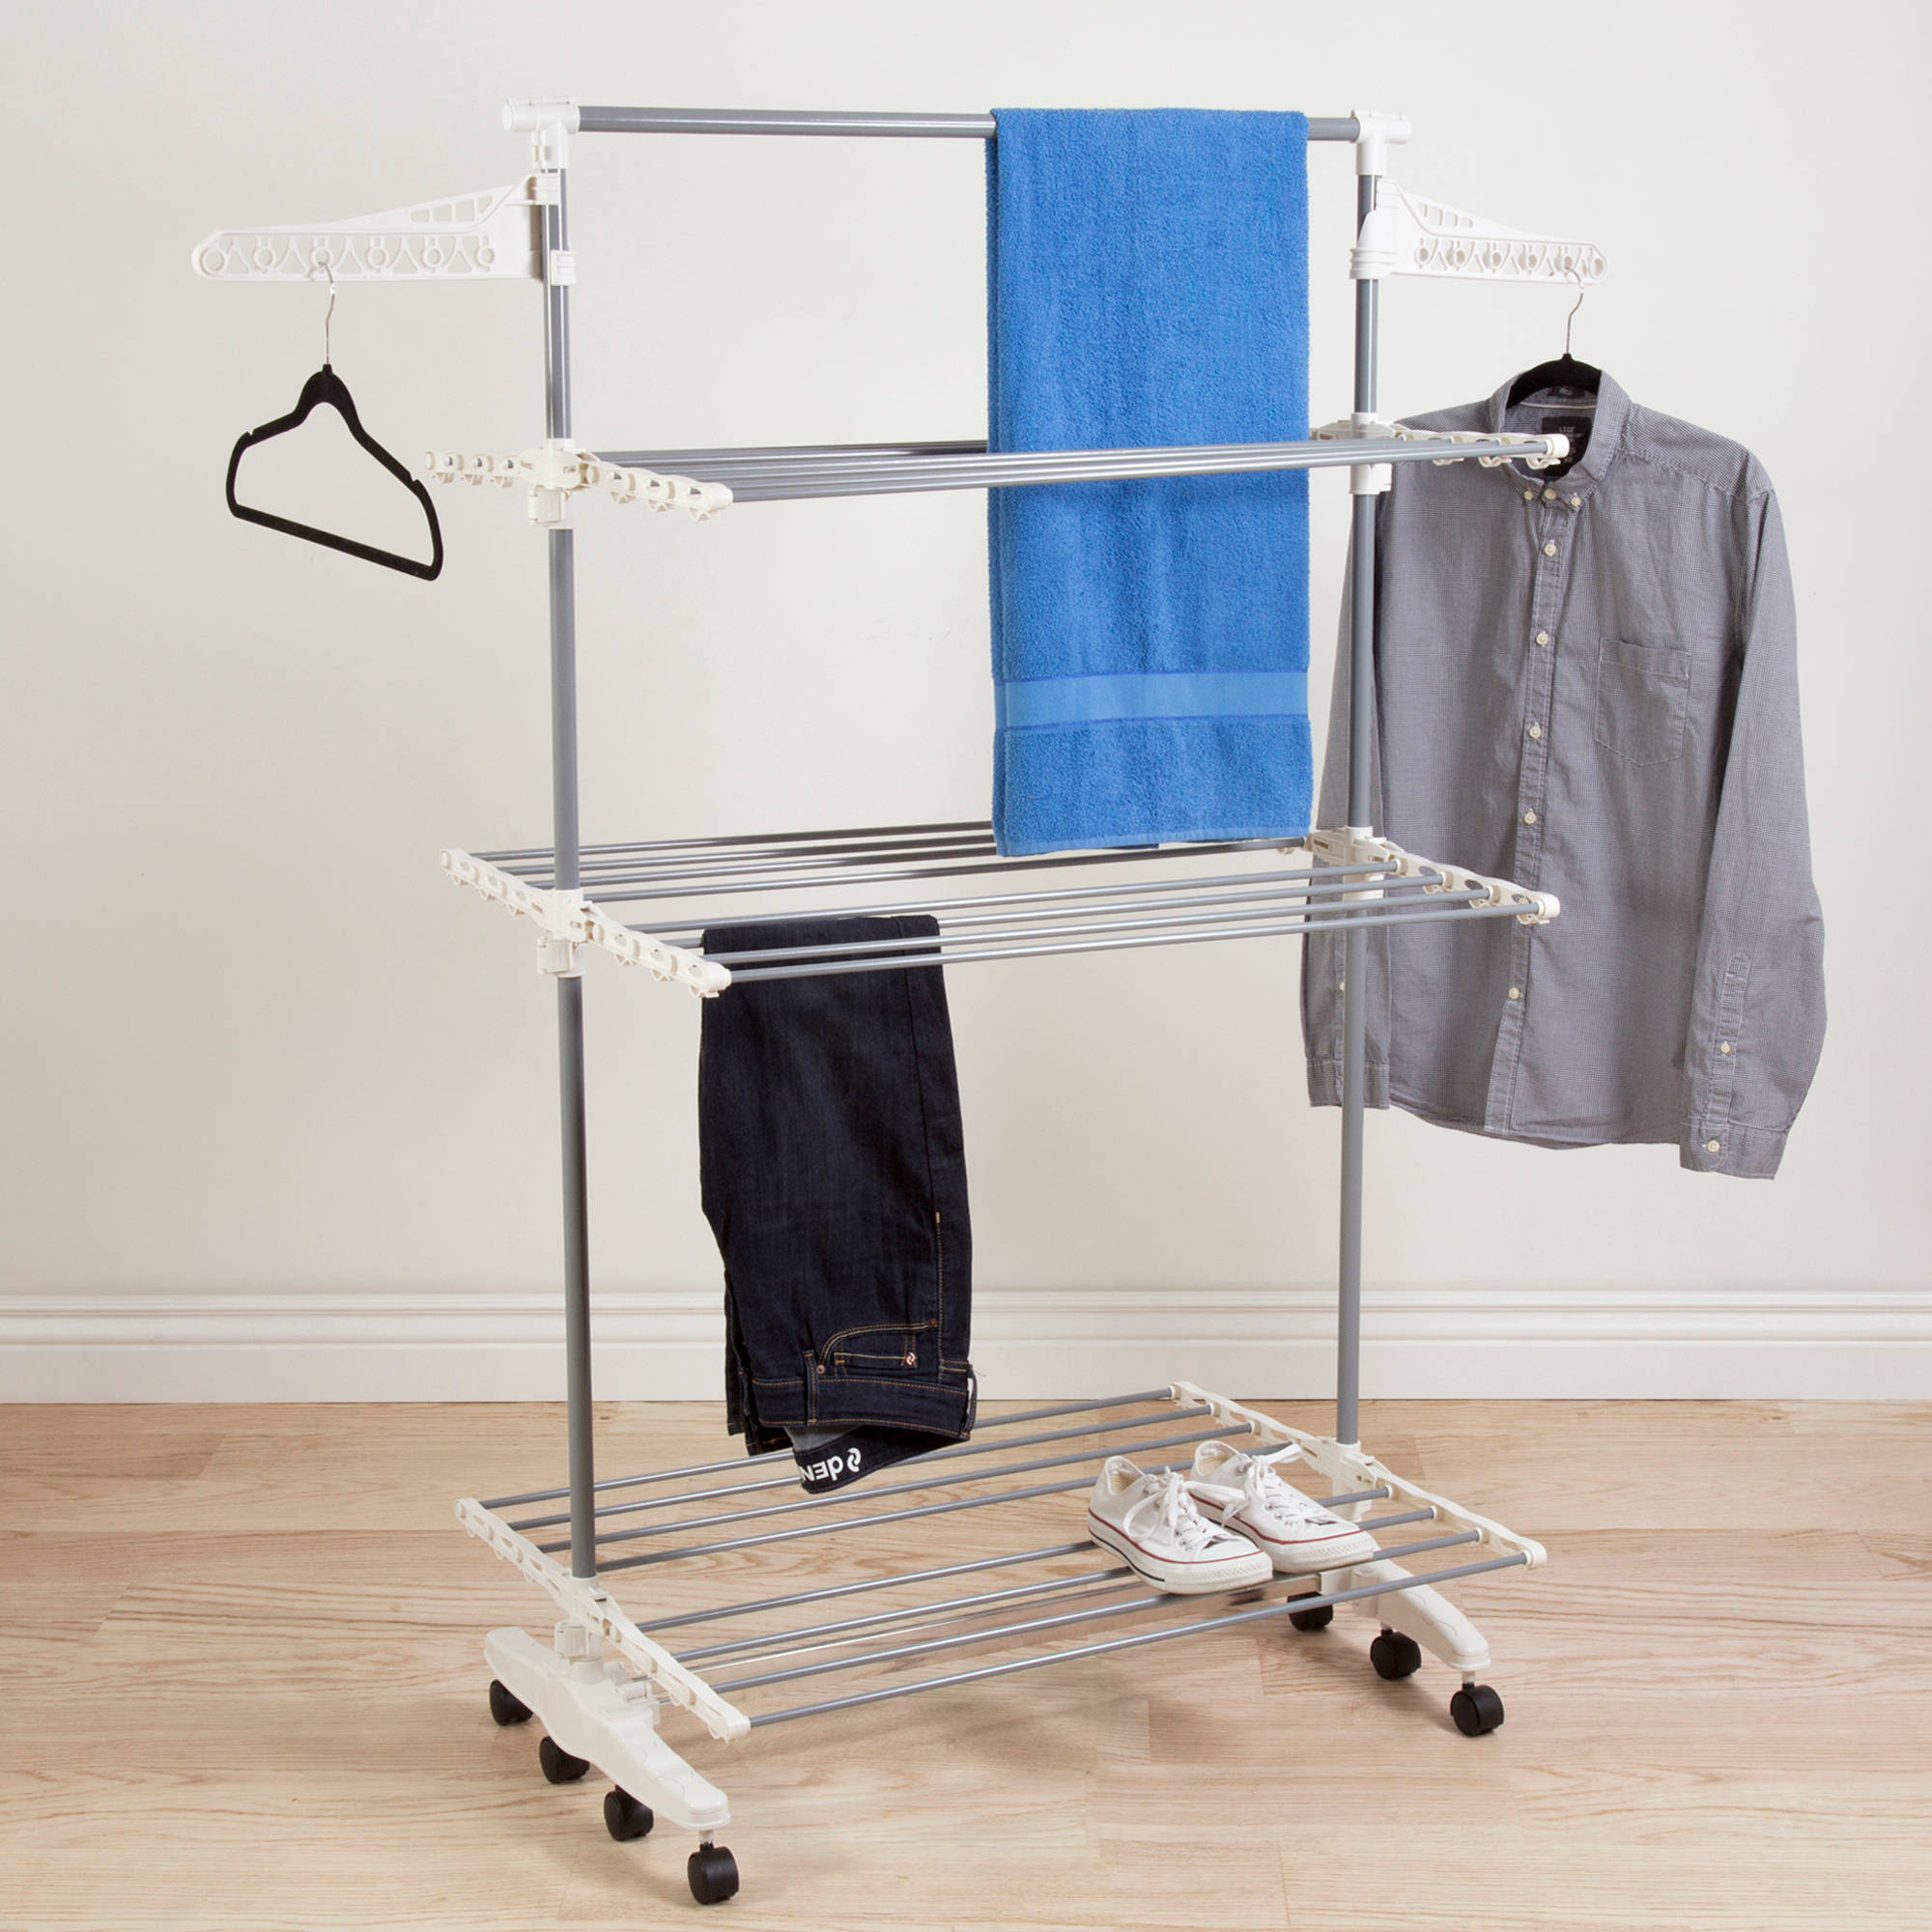 Everyday Home Rolling Stainless-Steel Drying Rack Over 8 Transitions